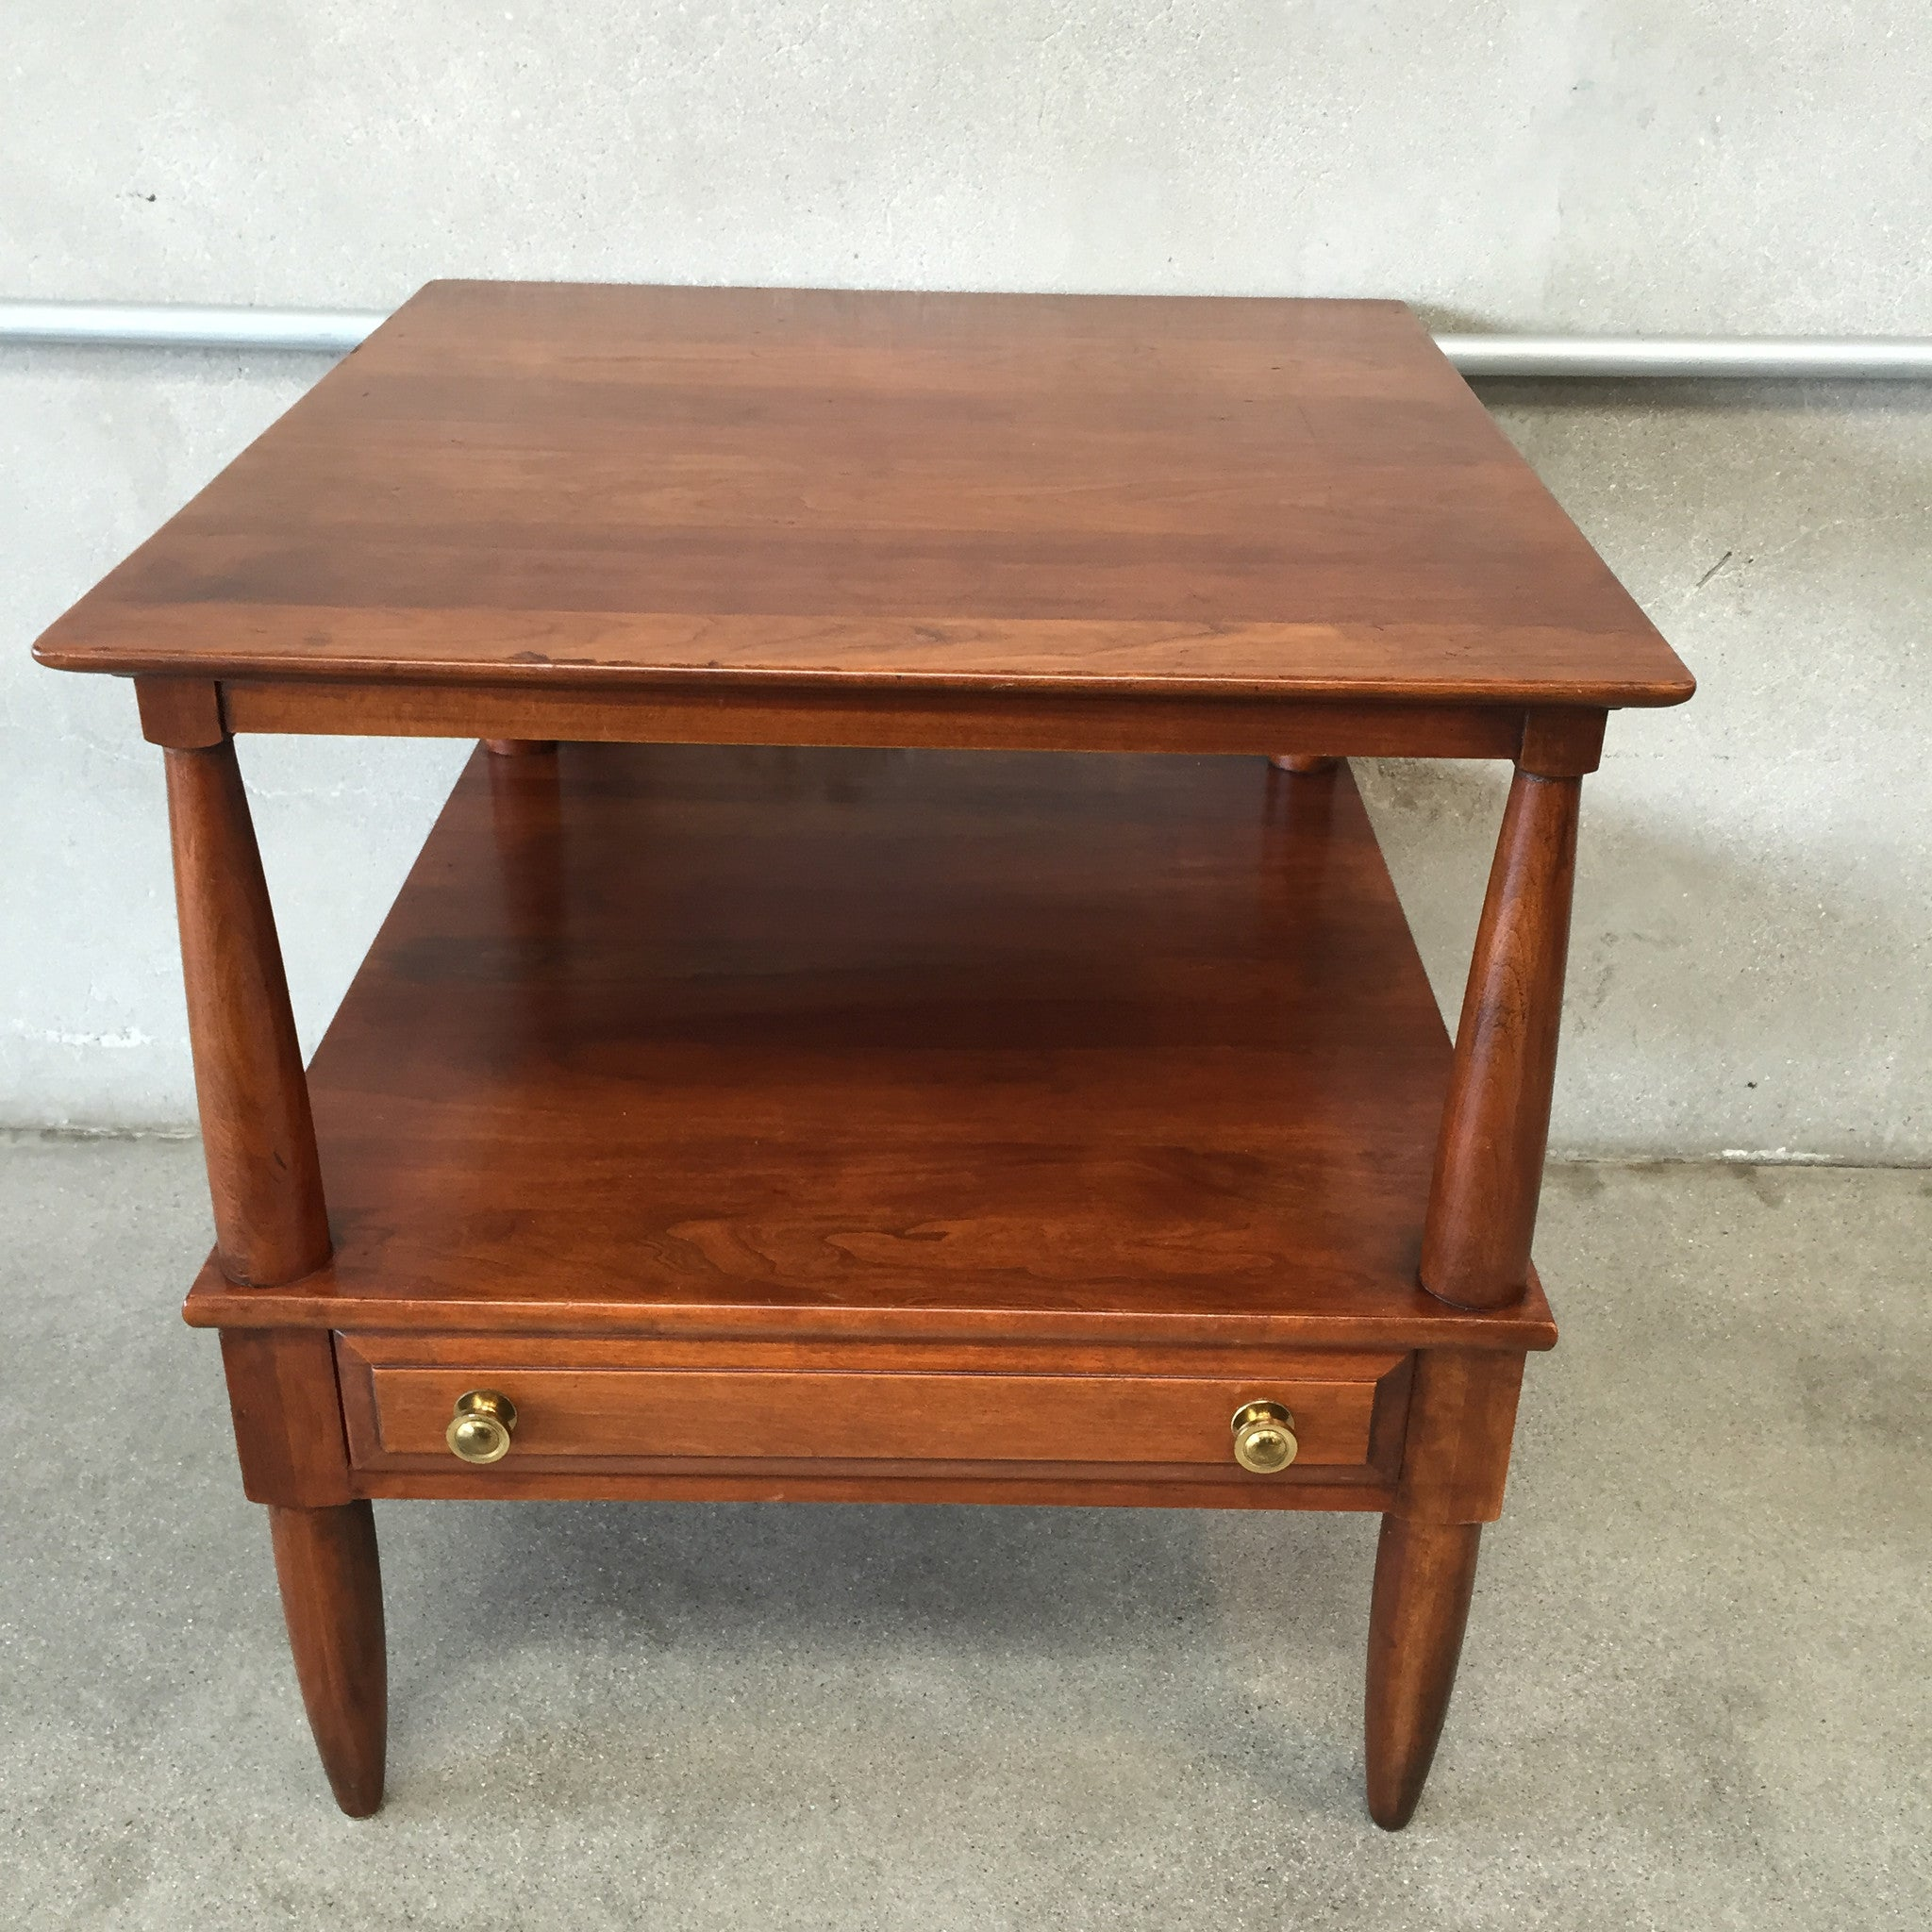 Willett Solid Cherry Mid Century Modern Side Table – UrbanAmericana